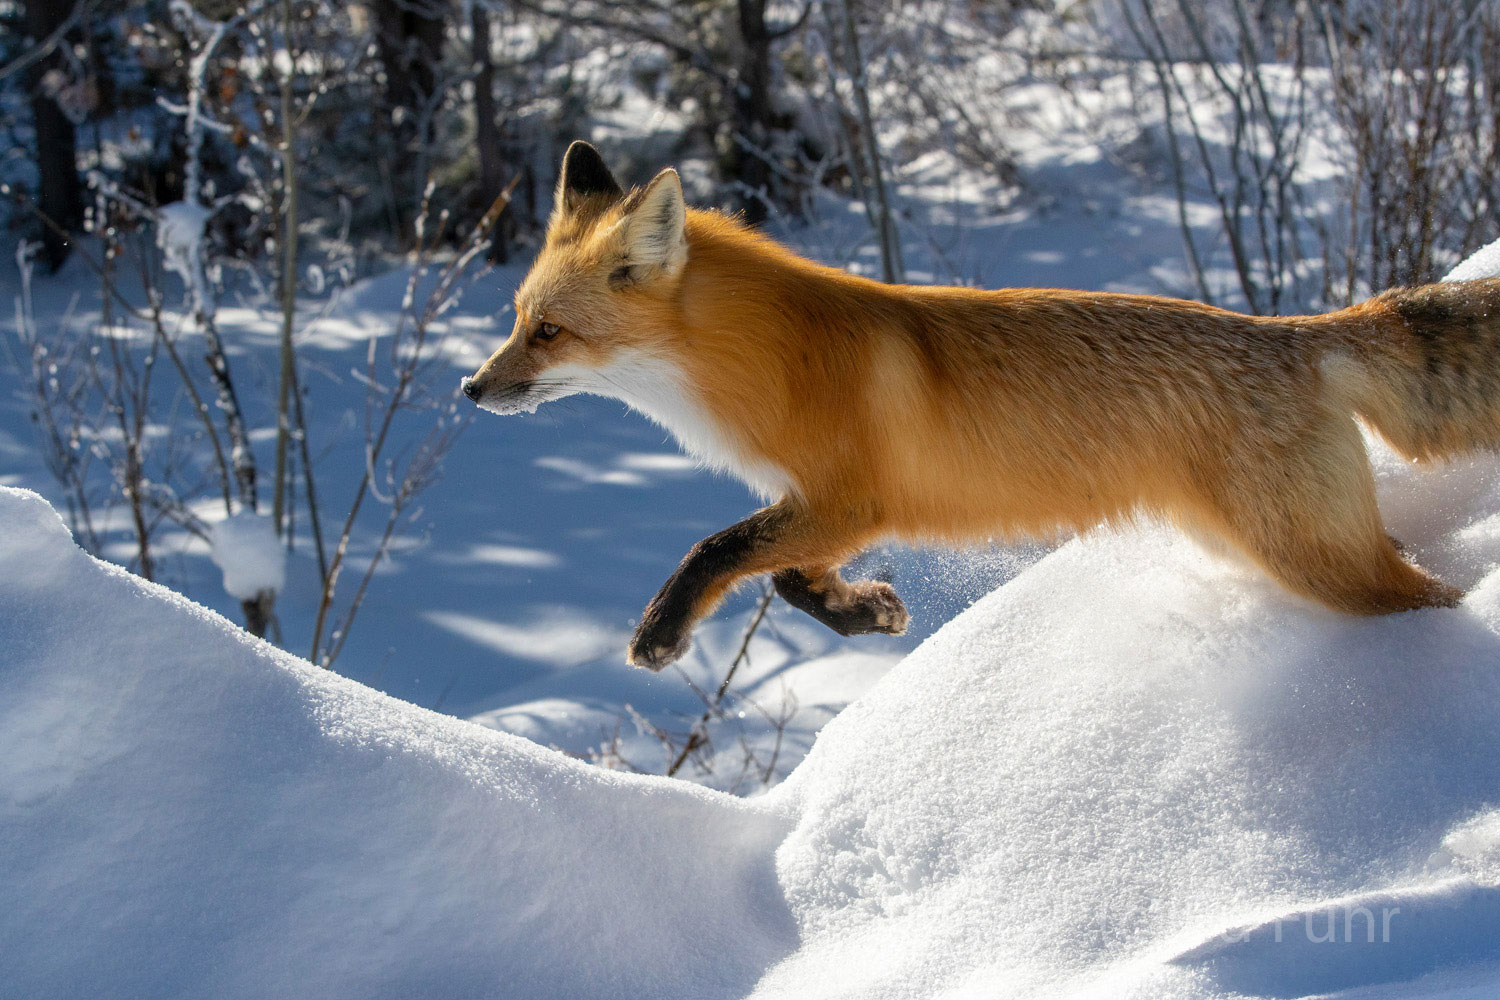 A fox leaps from a snow bank as he races ahead.